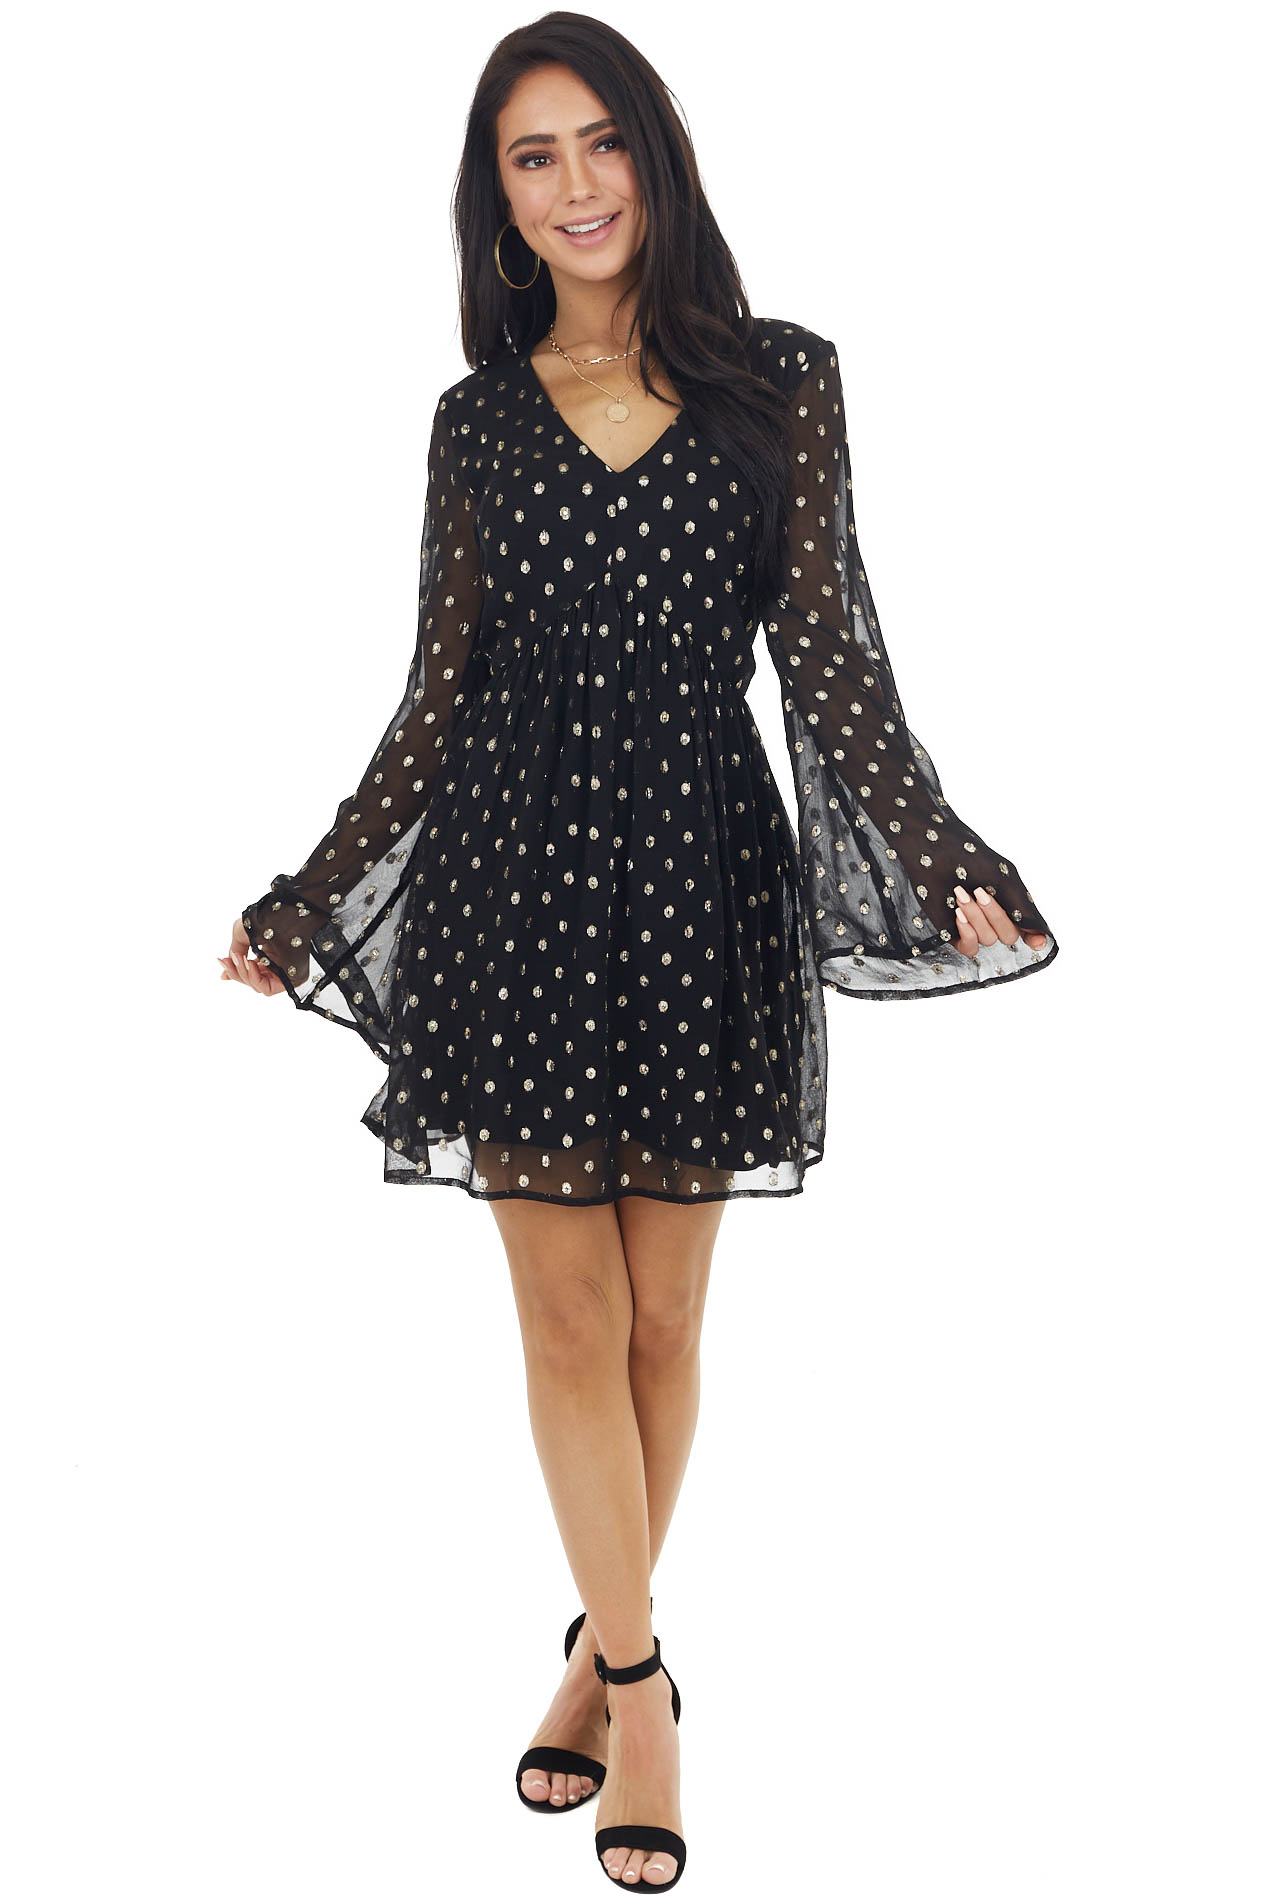 Black and Gold Polka Dot Print Short Dress with Bell Sleeves